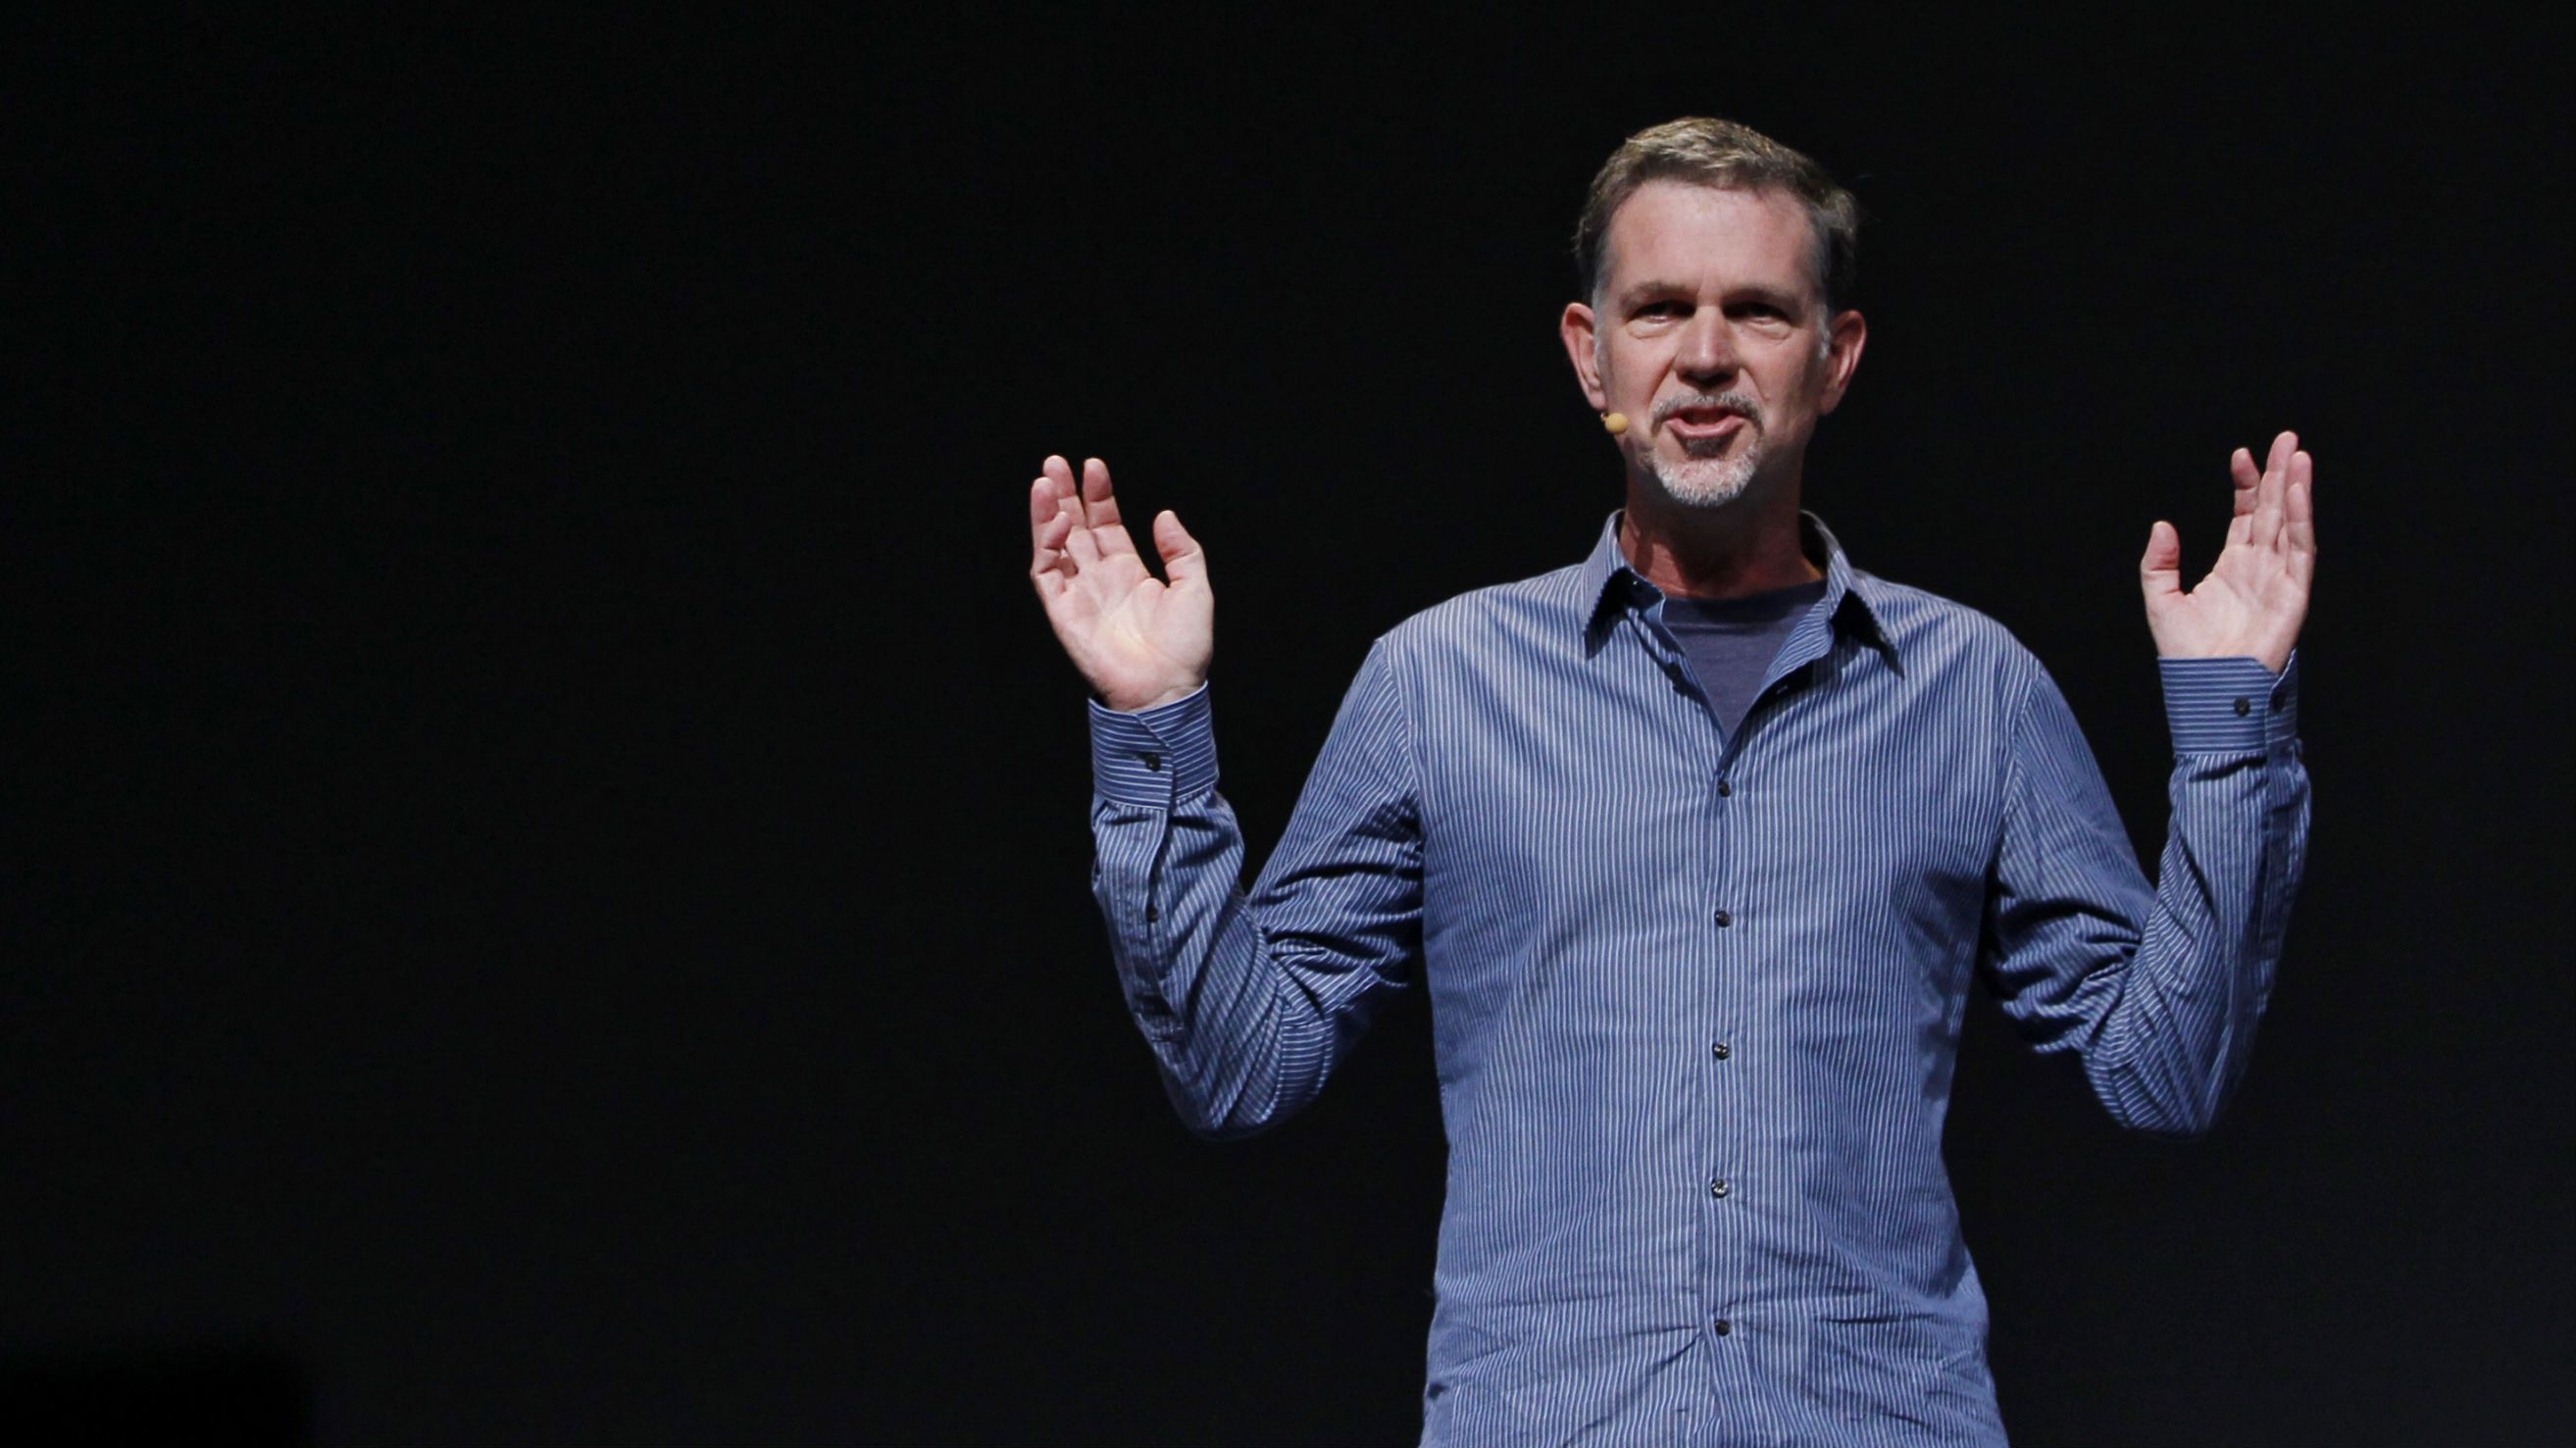 Reed Hastings of Netflix with his arms in the air